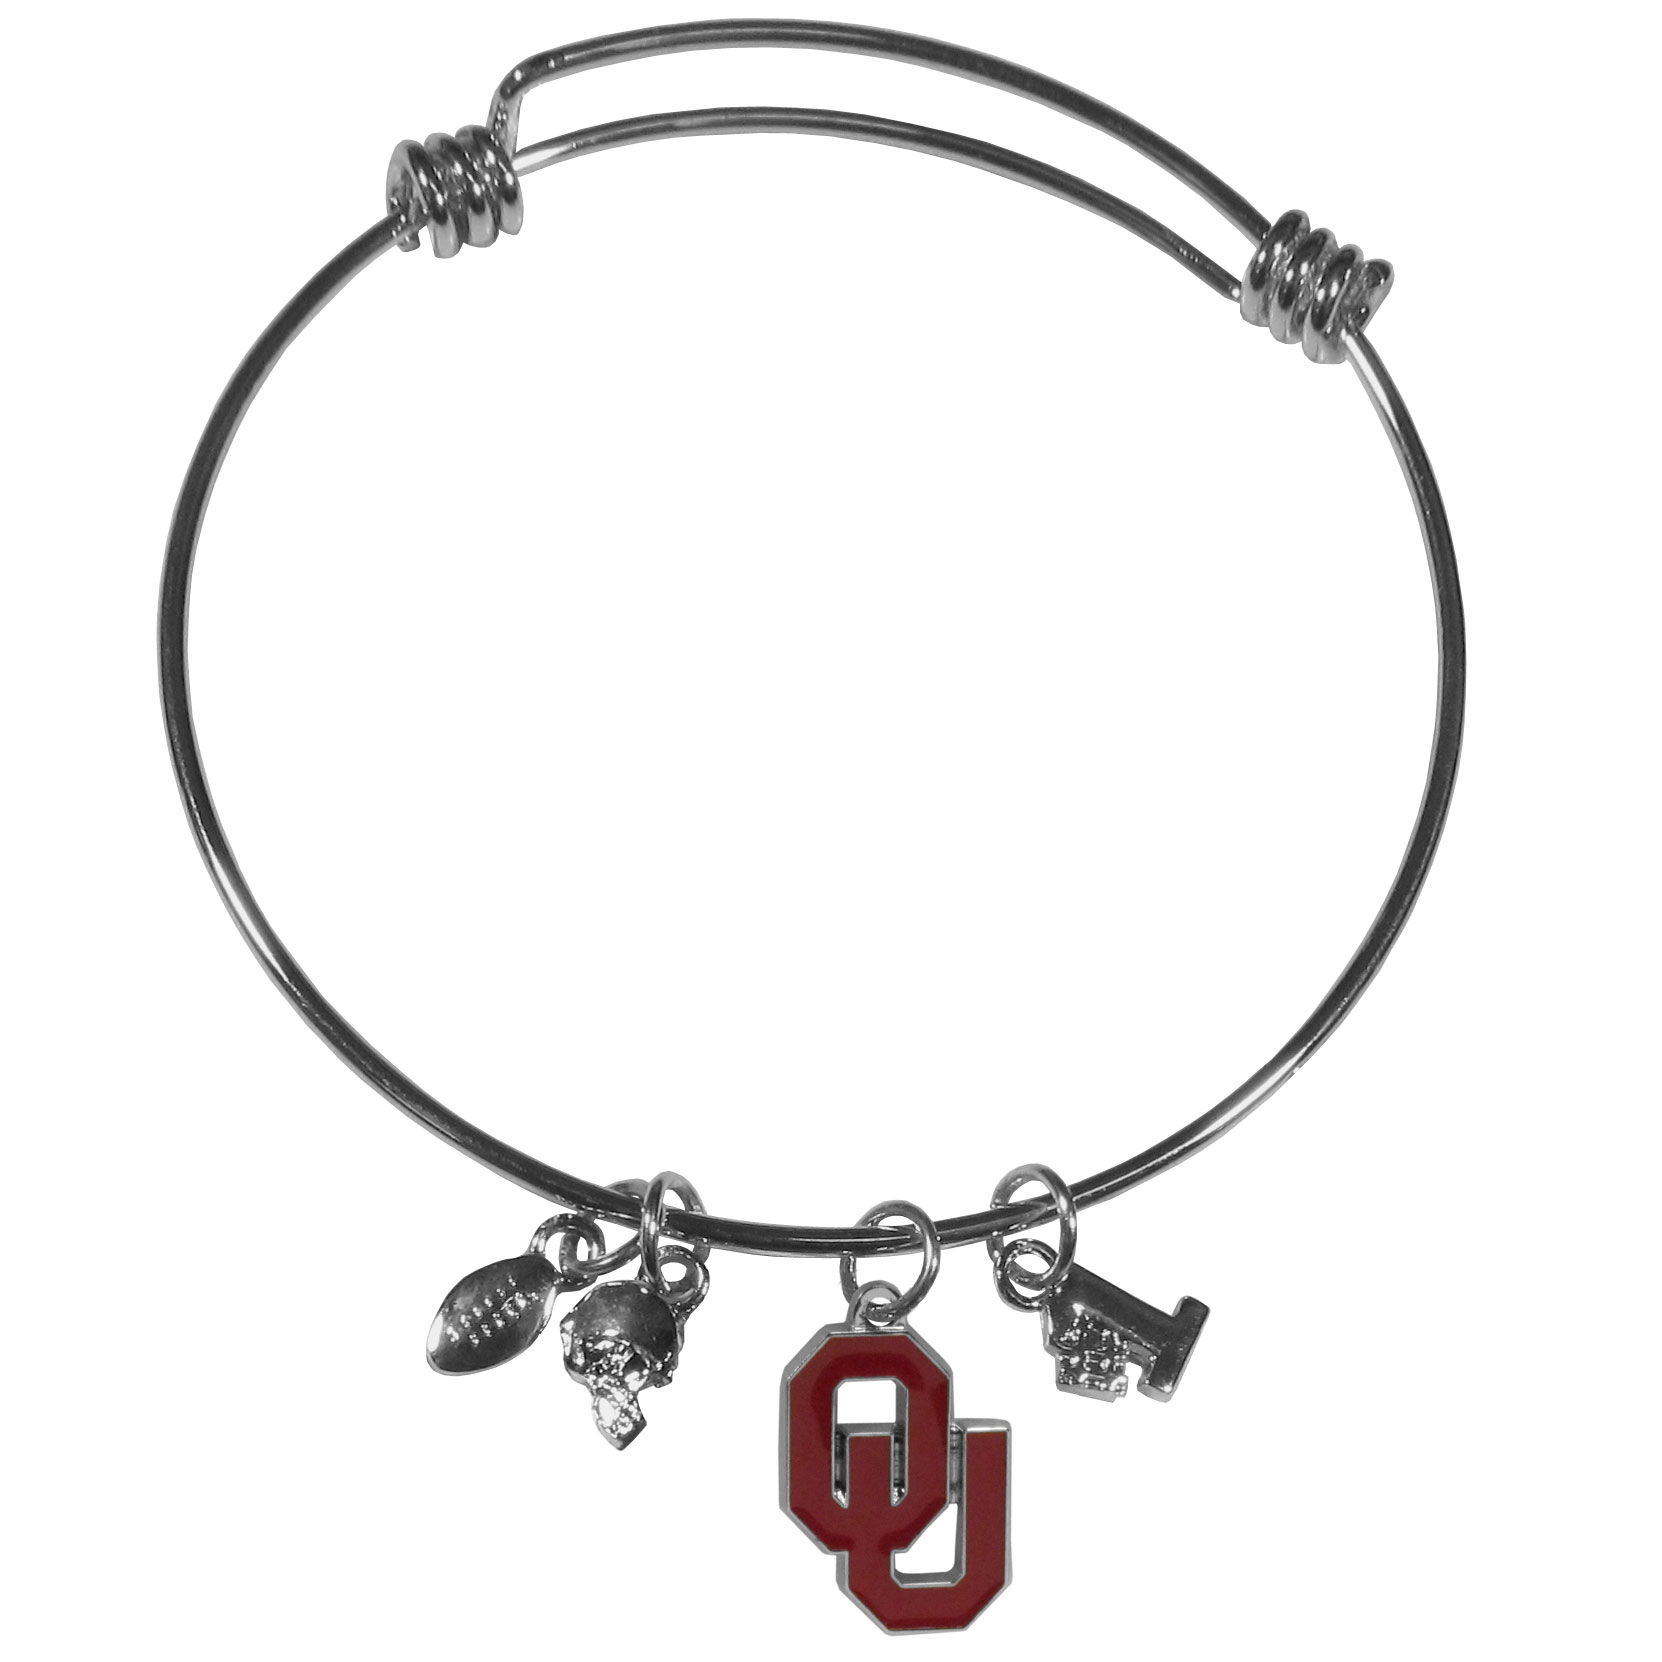 Oklahoma Sooners Charm Bangle Bracelet - Adjustable wire bracelets are all the rage and this Oklahoma Sooners bracelet matches the popular trend with your beloved team. The bracelet features 4 charms in total, each feature exceptional detail and the team charm has enameled team colors.